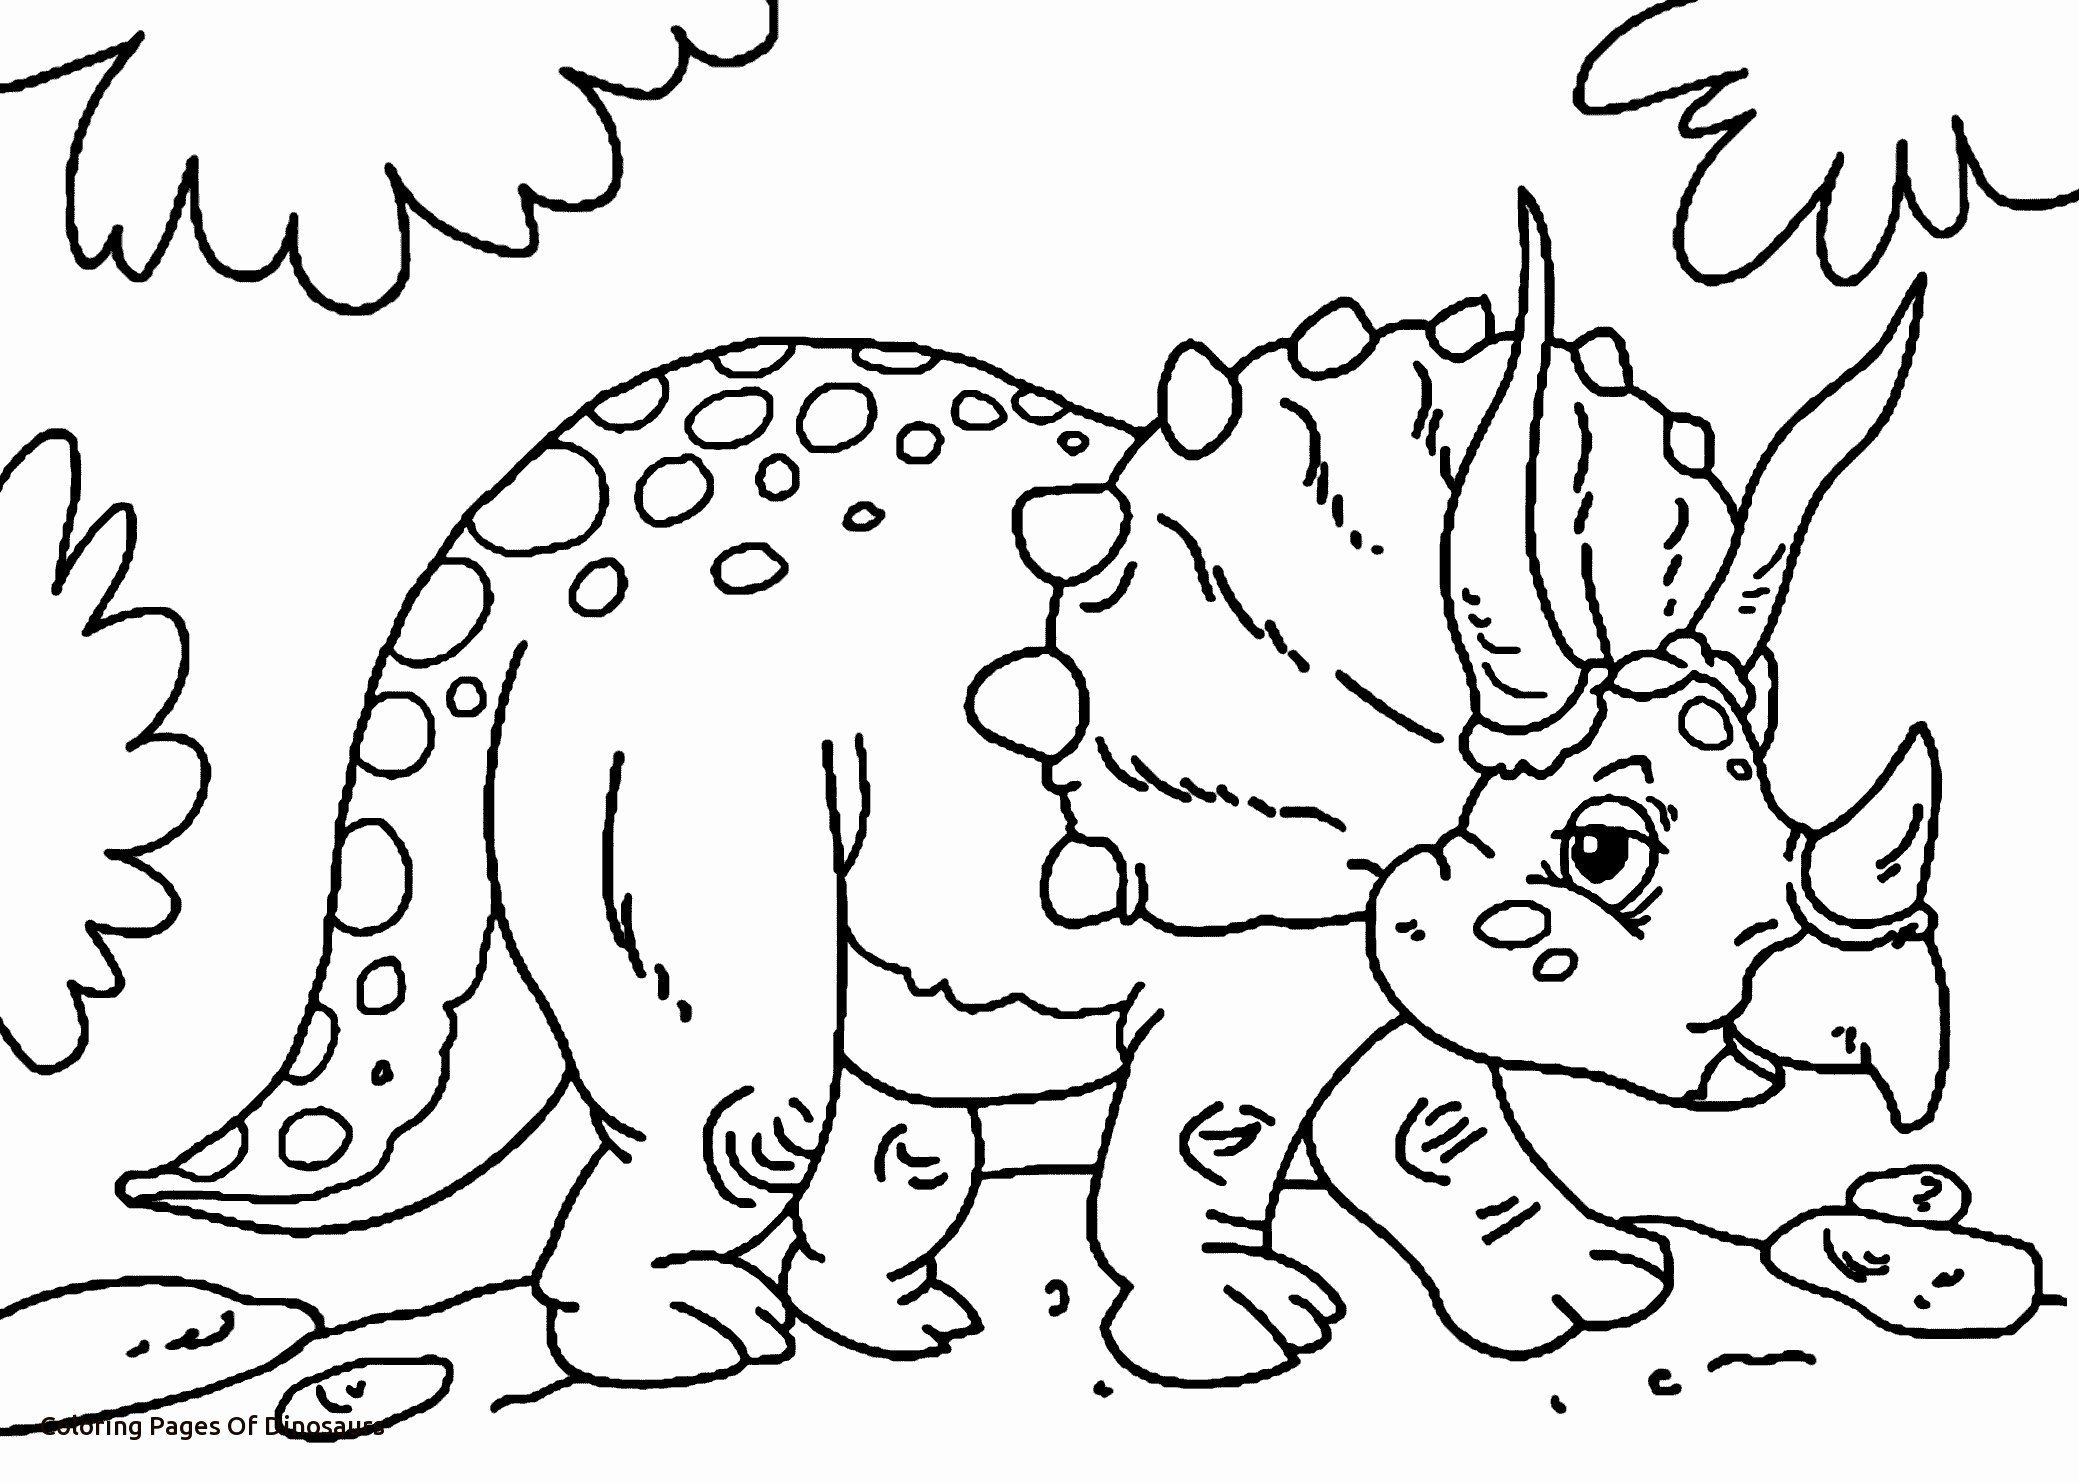 Dinosaur Free Coloring Pages Unique The Best Free Dinosaur Coloring Page Images Download Fro Dinosaur Coloring Pages Dinosaur Coloring Sheets Dinosaur Pictures